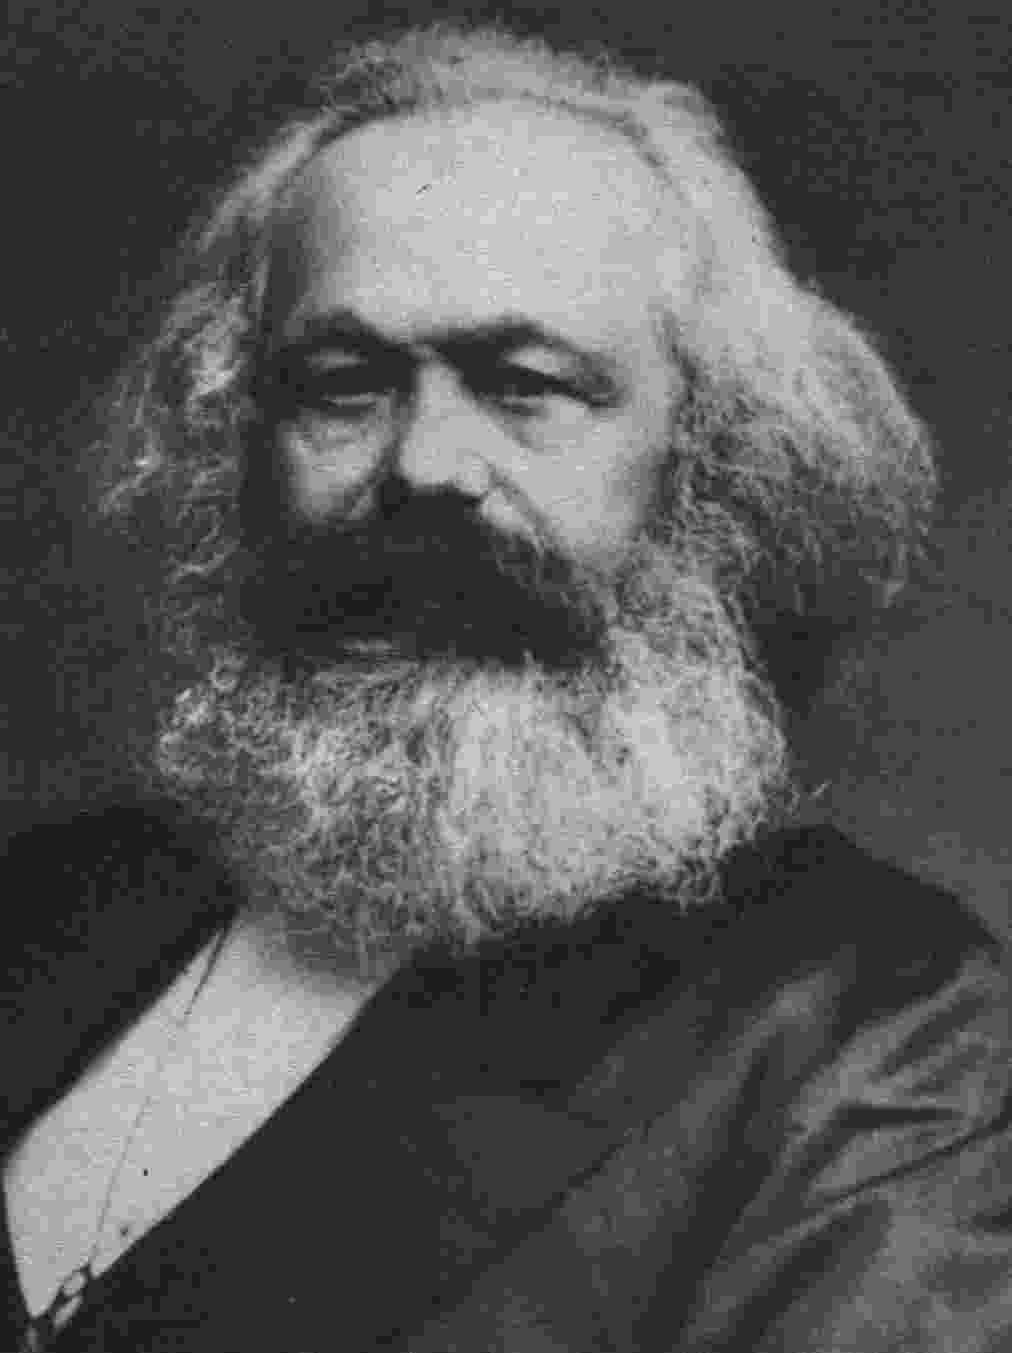 Marx's theory of alienation